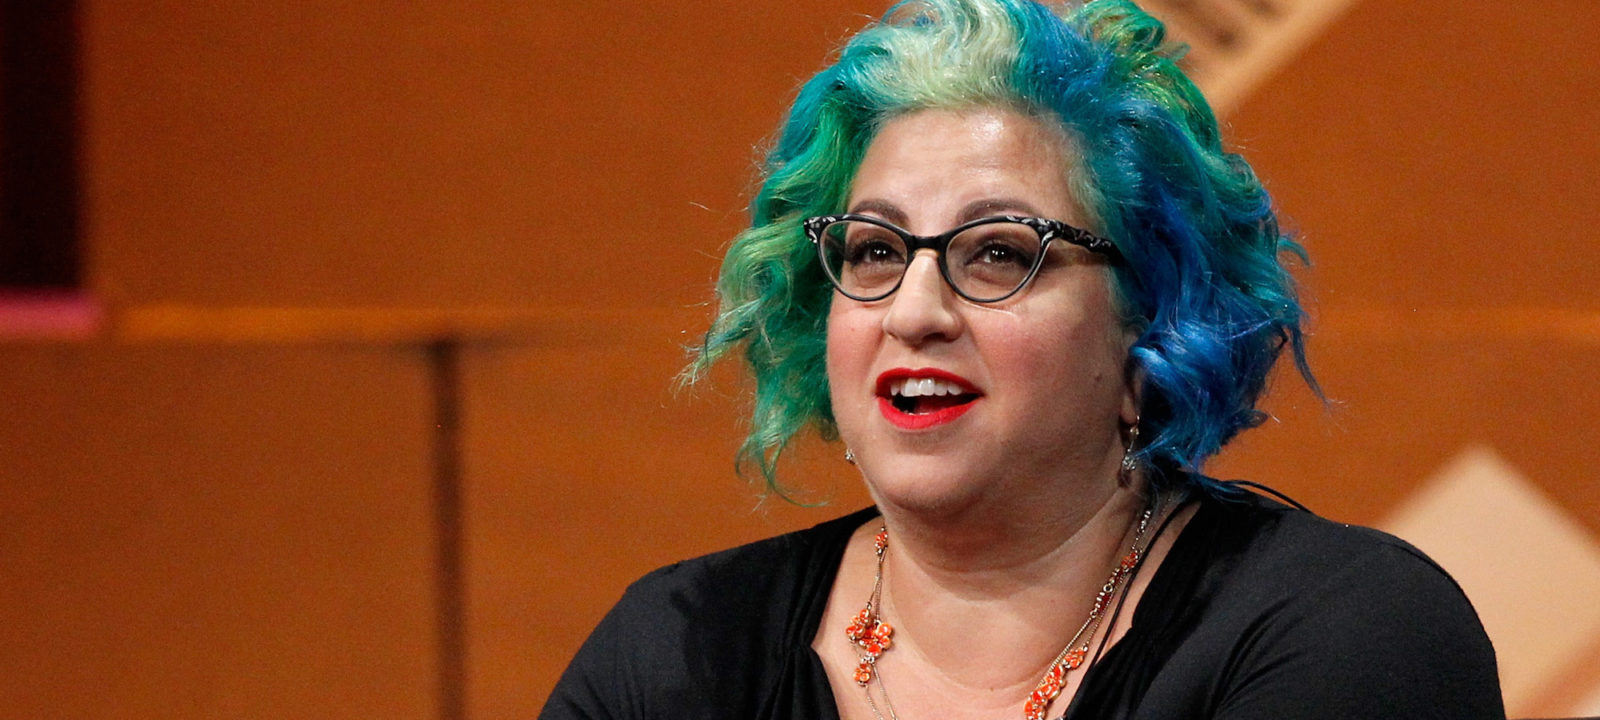 """Filmmaker Jenji Kohan speaks onstage during """"The Golden Age of Drama"""" at the Vanity Fair New Establishment Summit at Yerba Buena Center for the Arts on October 9, 2014 in San Francisco, California."""